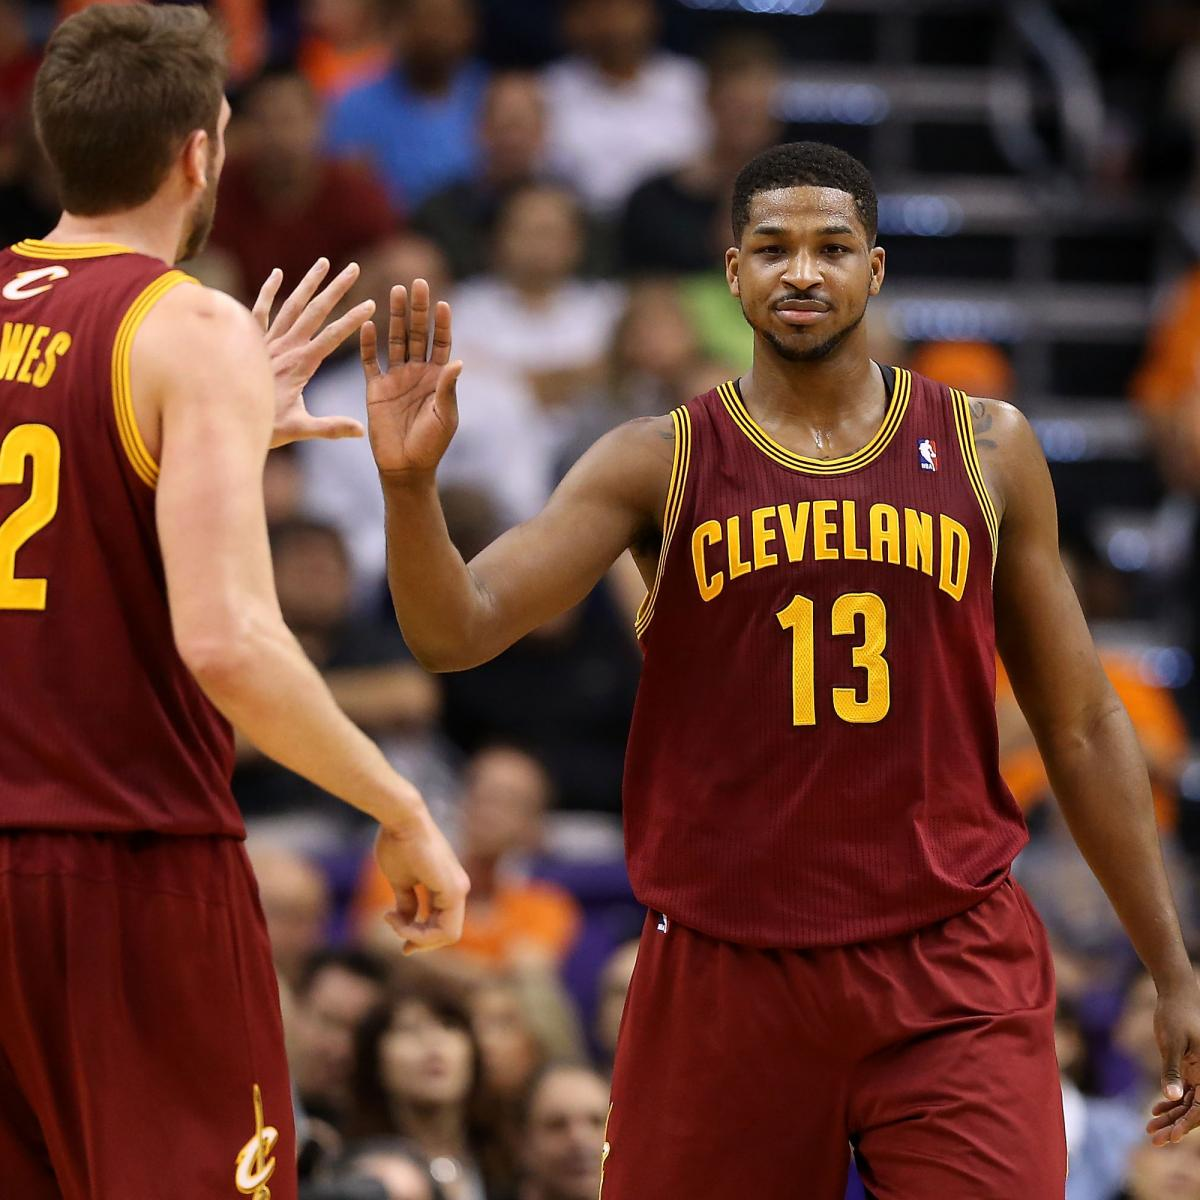 Latest on Tristan Thompson, Austin Rivers and More ...